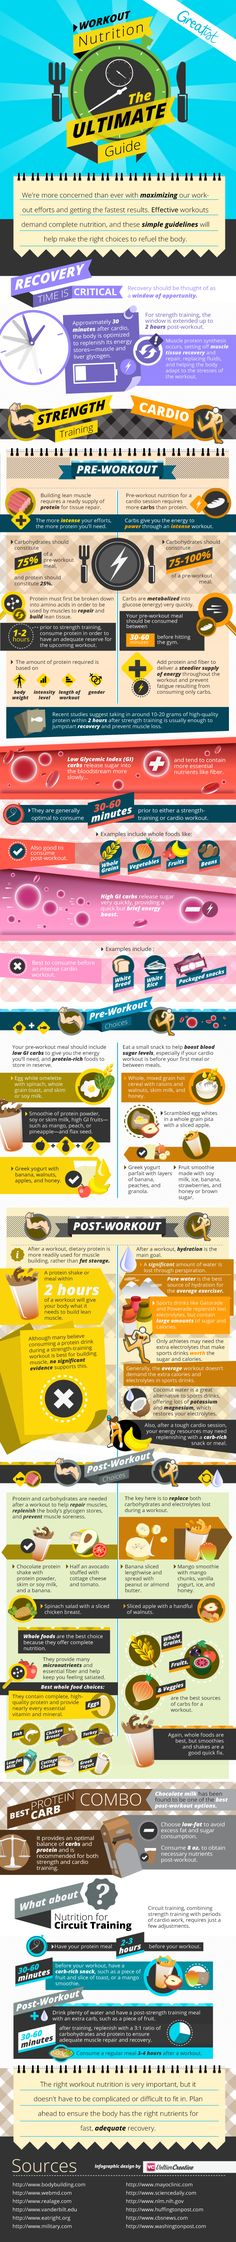 <p>We're more concerned than ever with maximizing our workout efforts and getting the fastest results. Effective workouts demand complete nutrition, and these simple guidelines will help make the right choices to refuel the body.</p> https://greatist.com/health/complete-guide-workout-nutrition-infographic